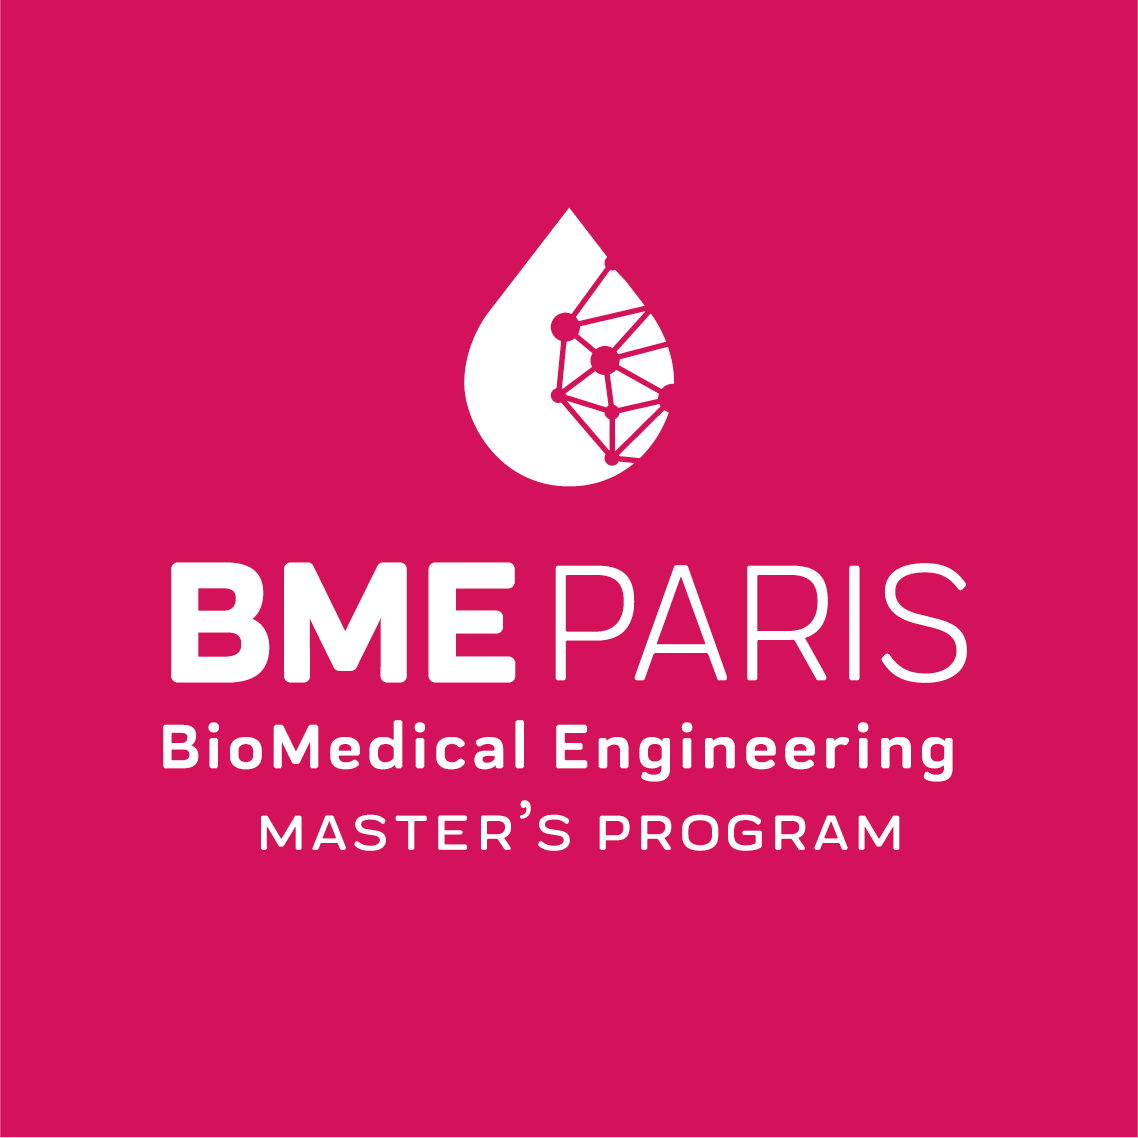 BME Paris